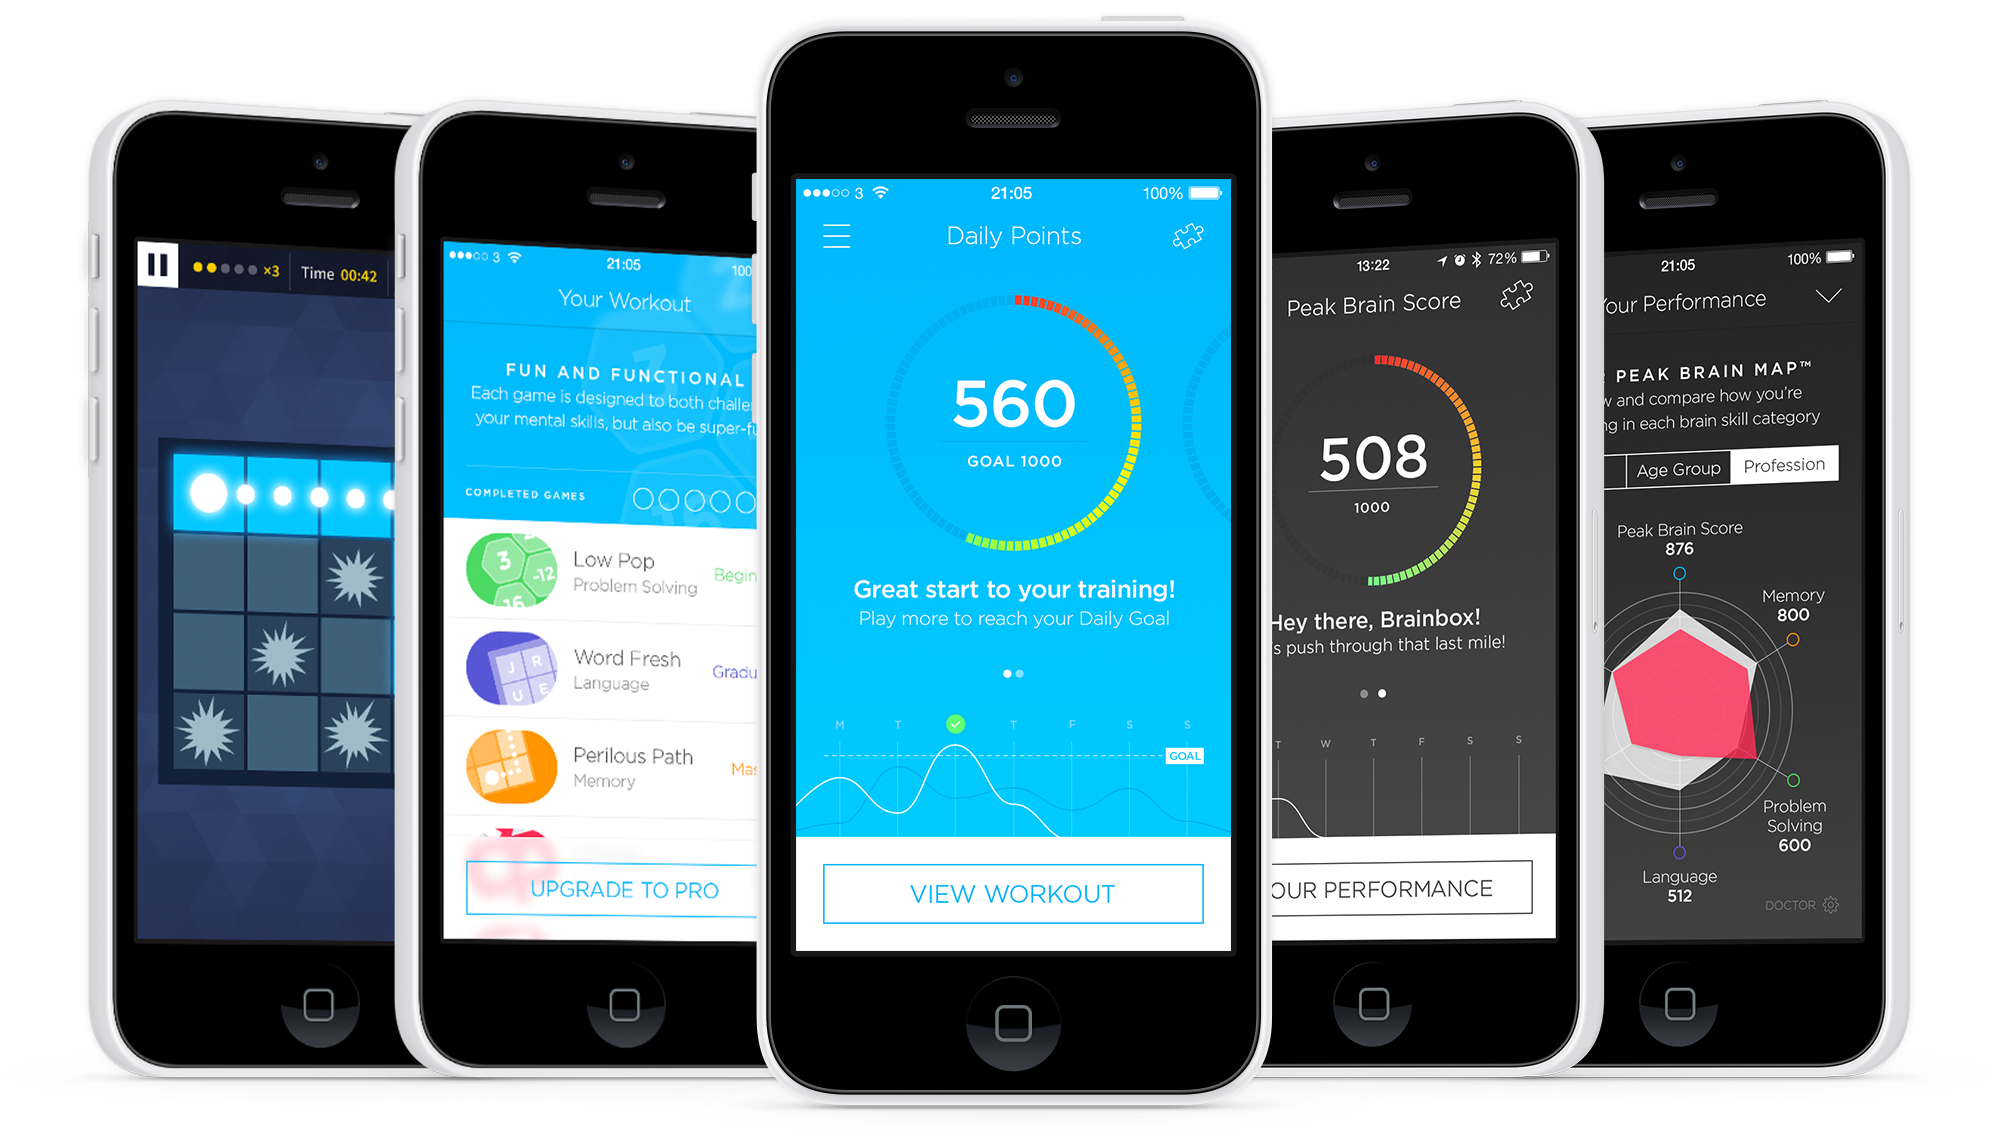 Exercise your brain for less with Peak for the iPhone and iPad